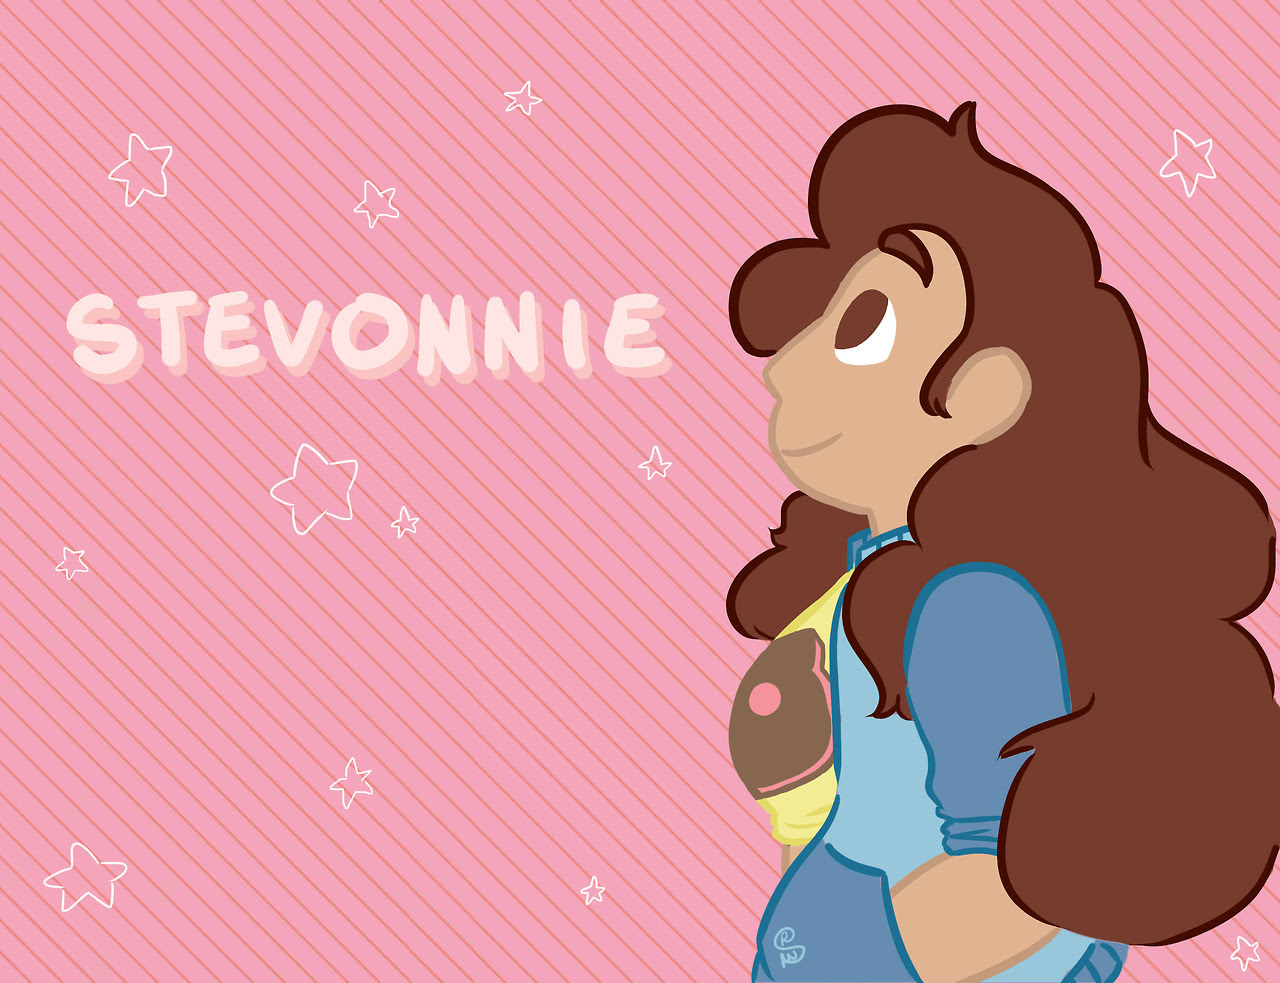 stevonnie from steven universe [[MORE]]college: senior year spring semester my ASPIRE teacher bought some steven universe buttons from me for her kids a little later she said that they really liked...